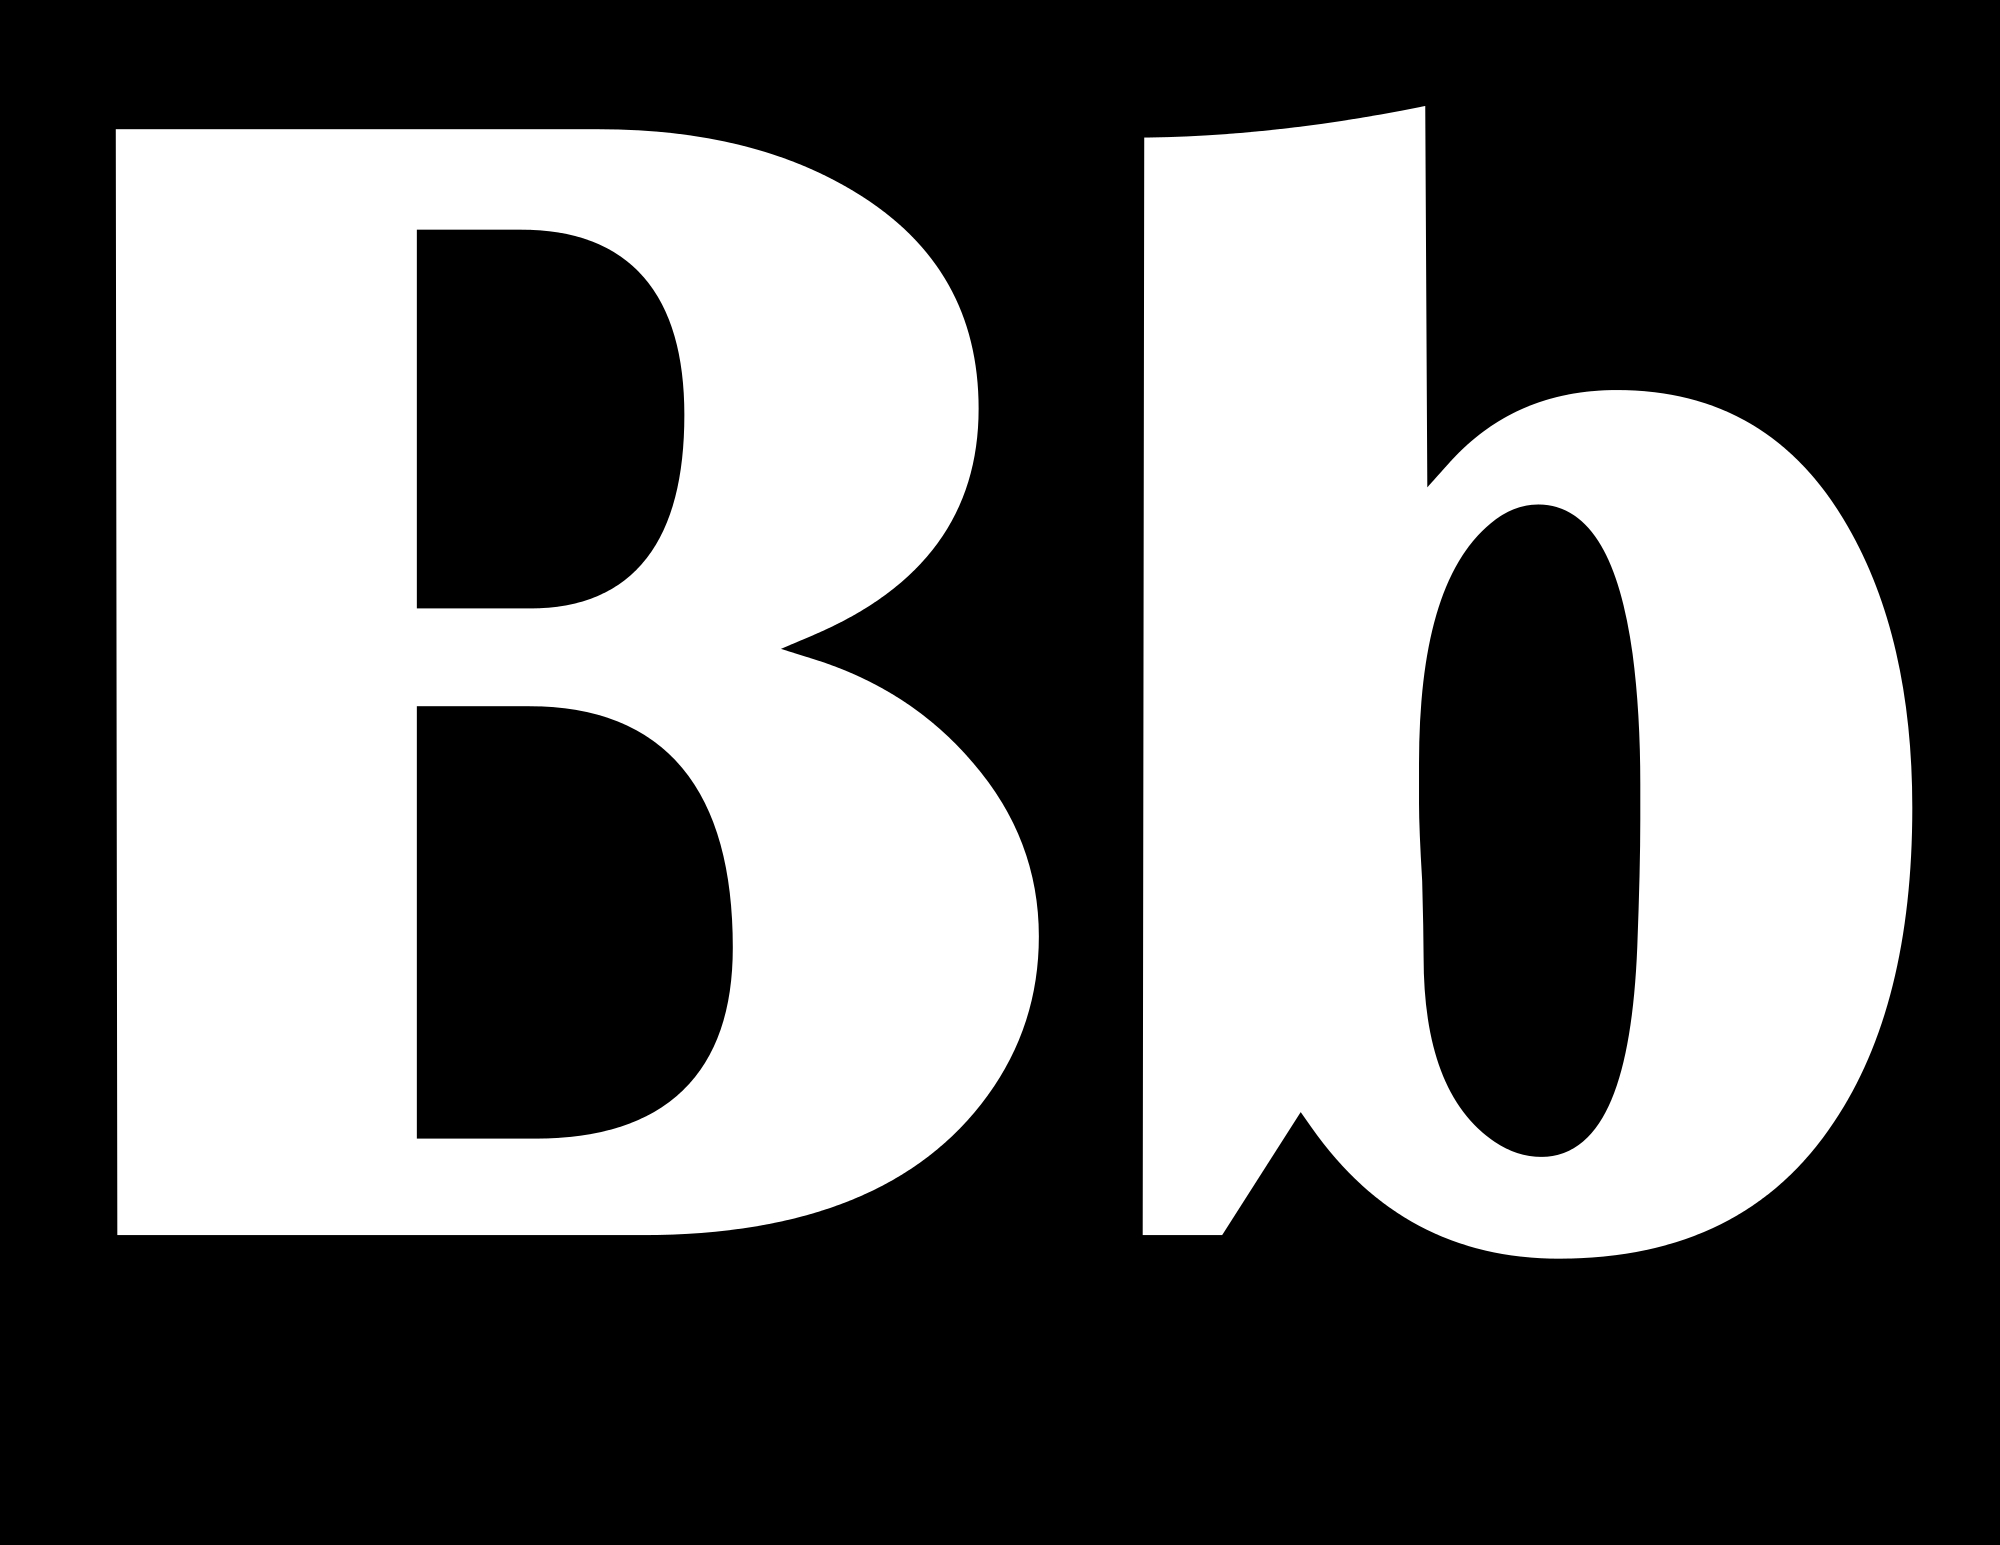 B Coloring Page File Classic Alphabet B At Coloring Pages For Kids Boys Dotcom Svg